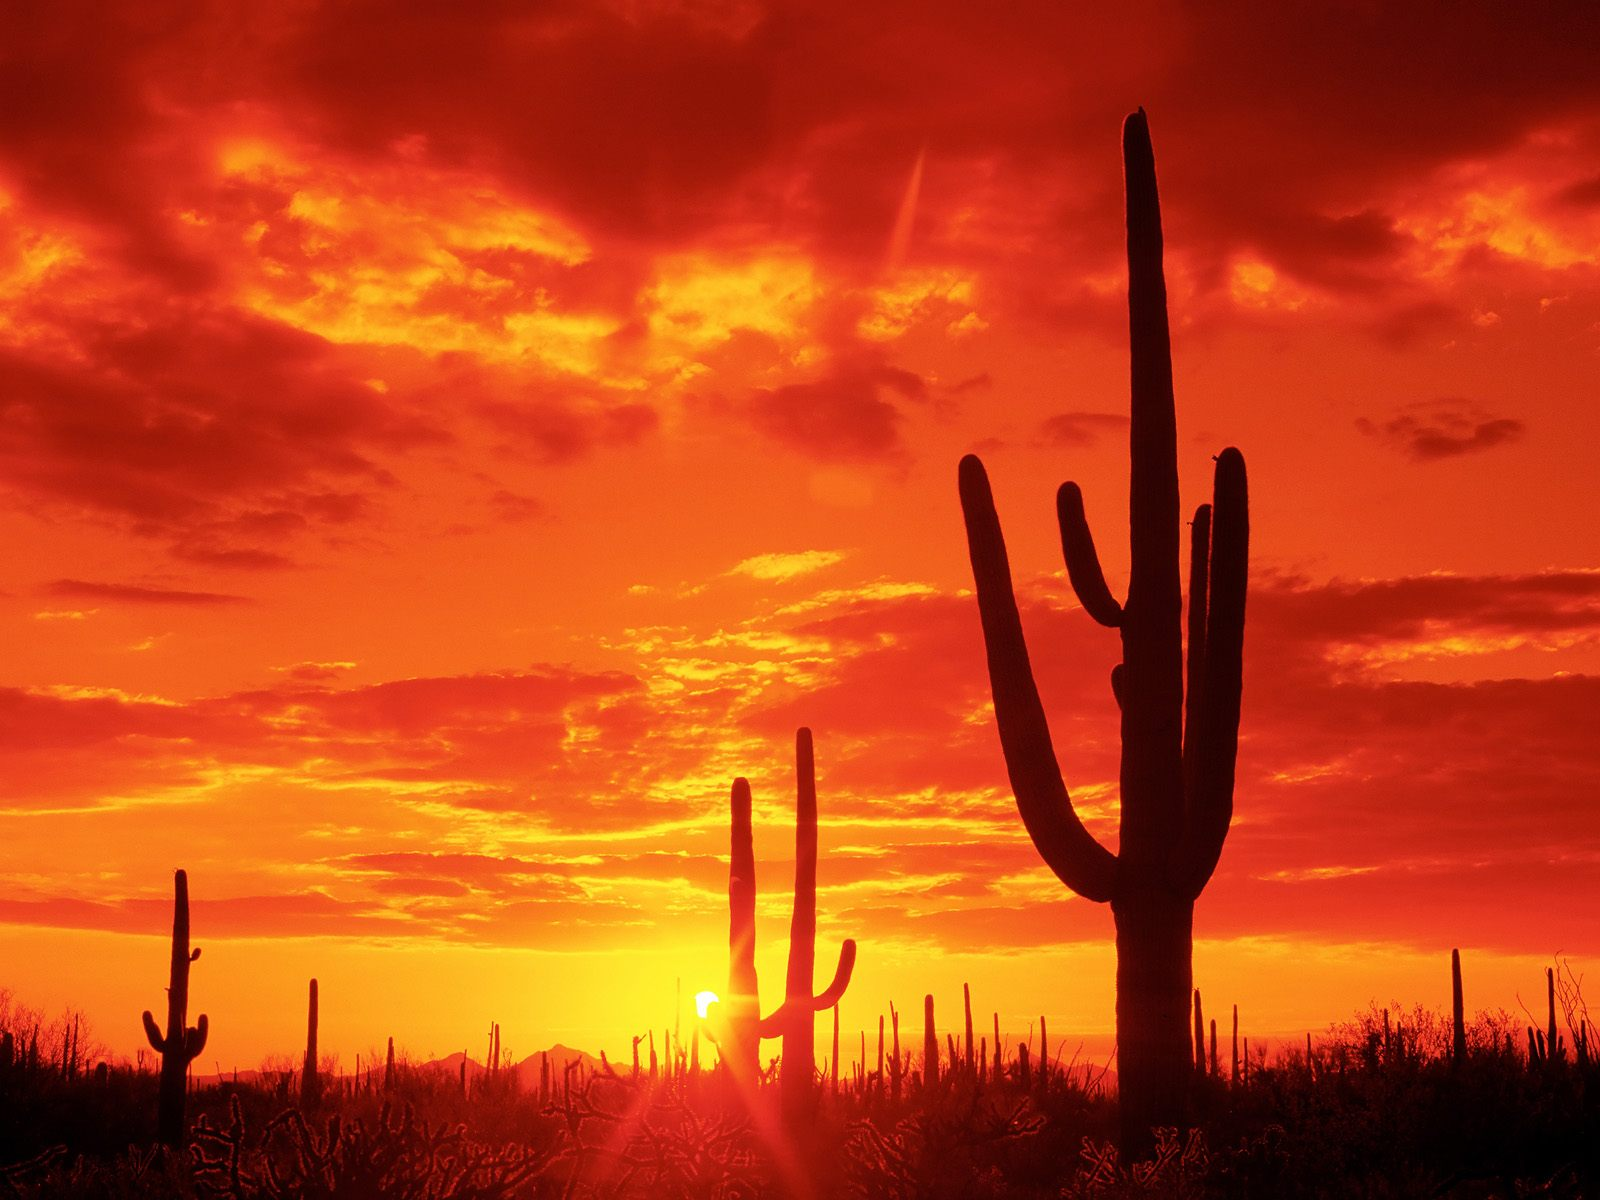 Download HQ Burning Sunset Saguaro National Park Arizona Wallpaper 1600x1200